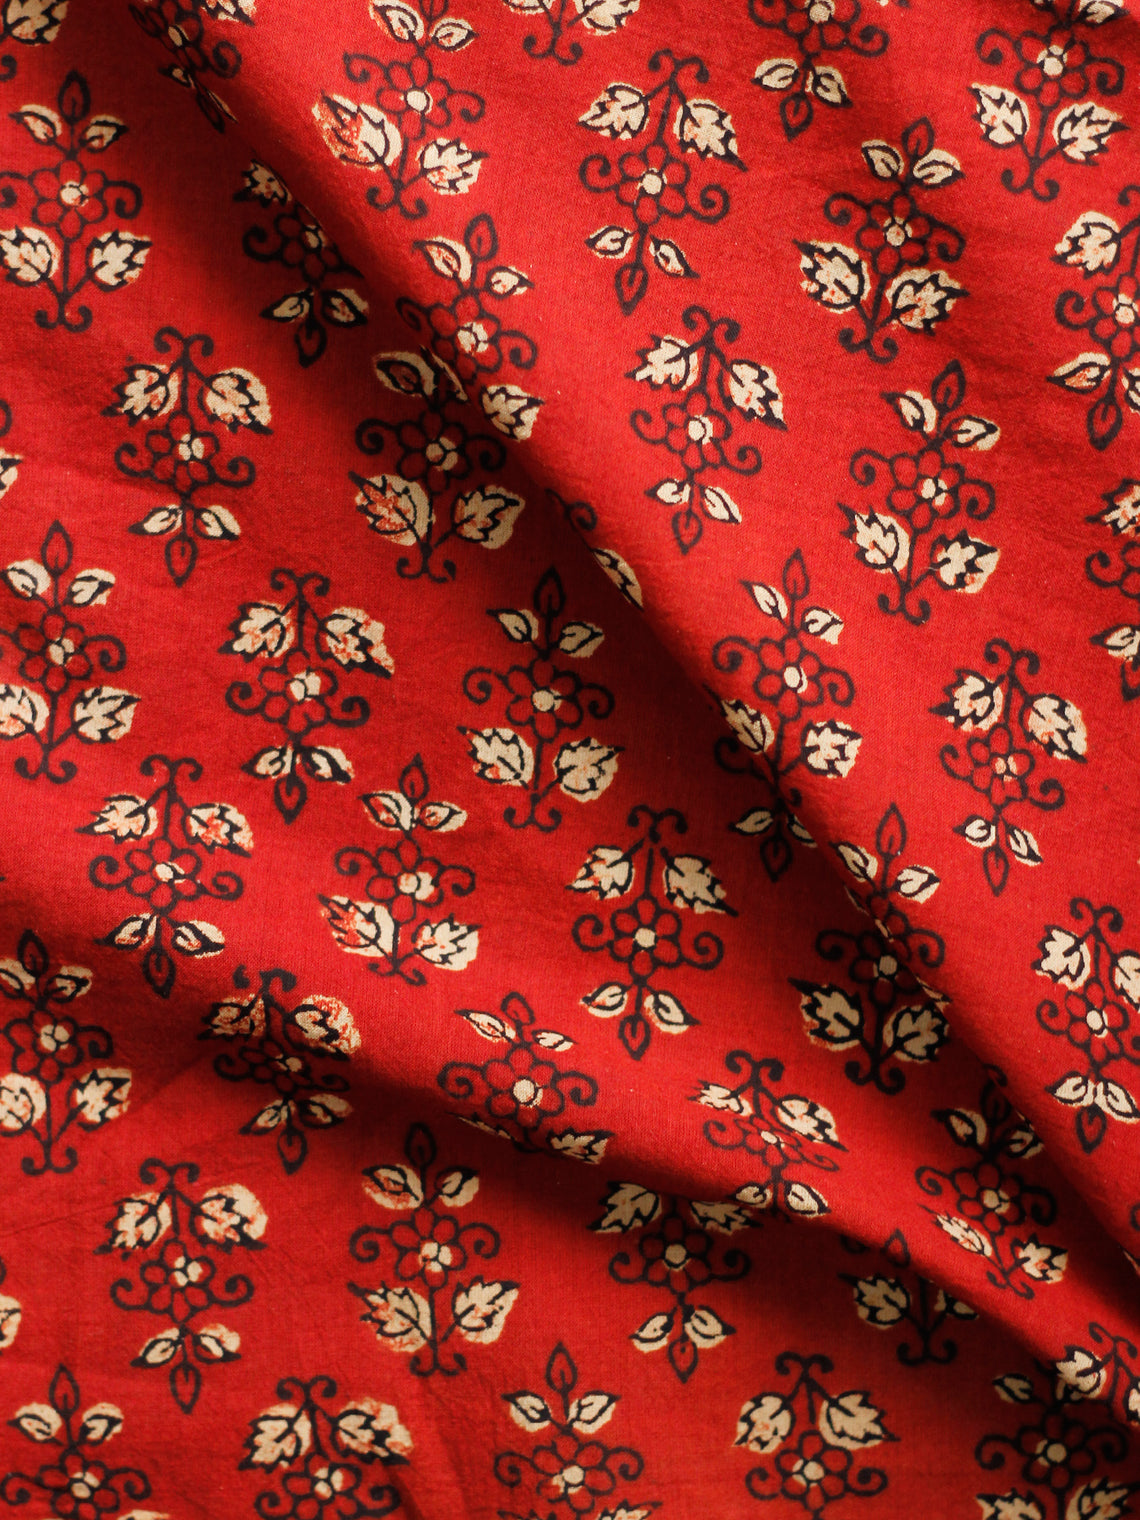 Rust Beige Black Hand Block Printed Cotton Fabric Per Meter - F001F1830